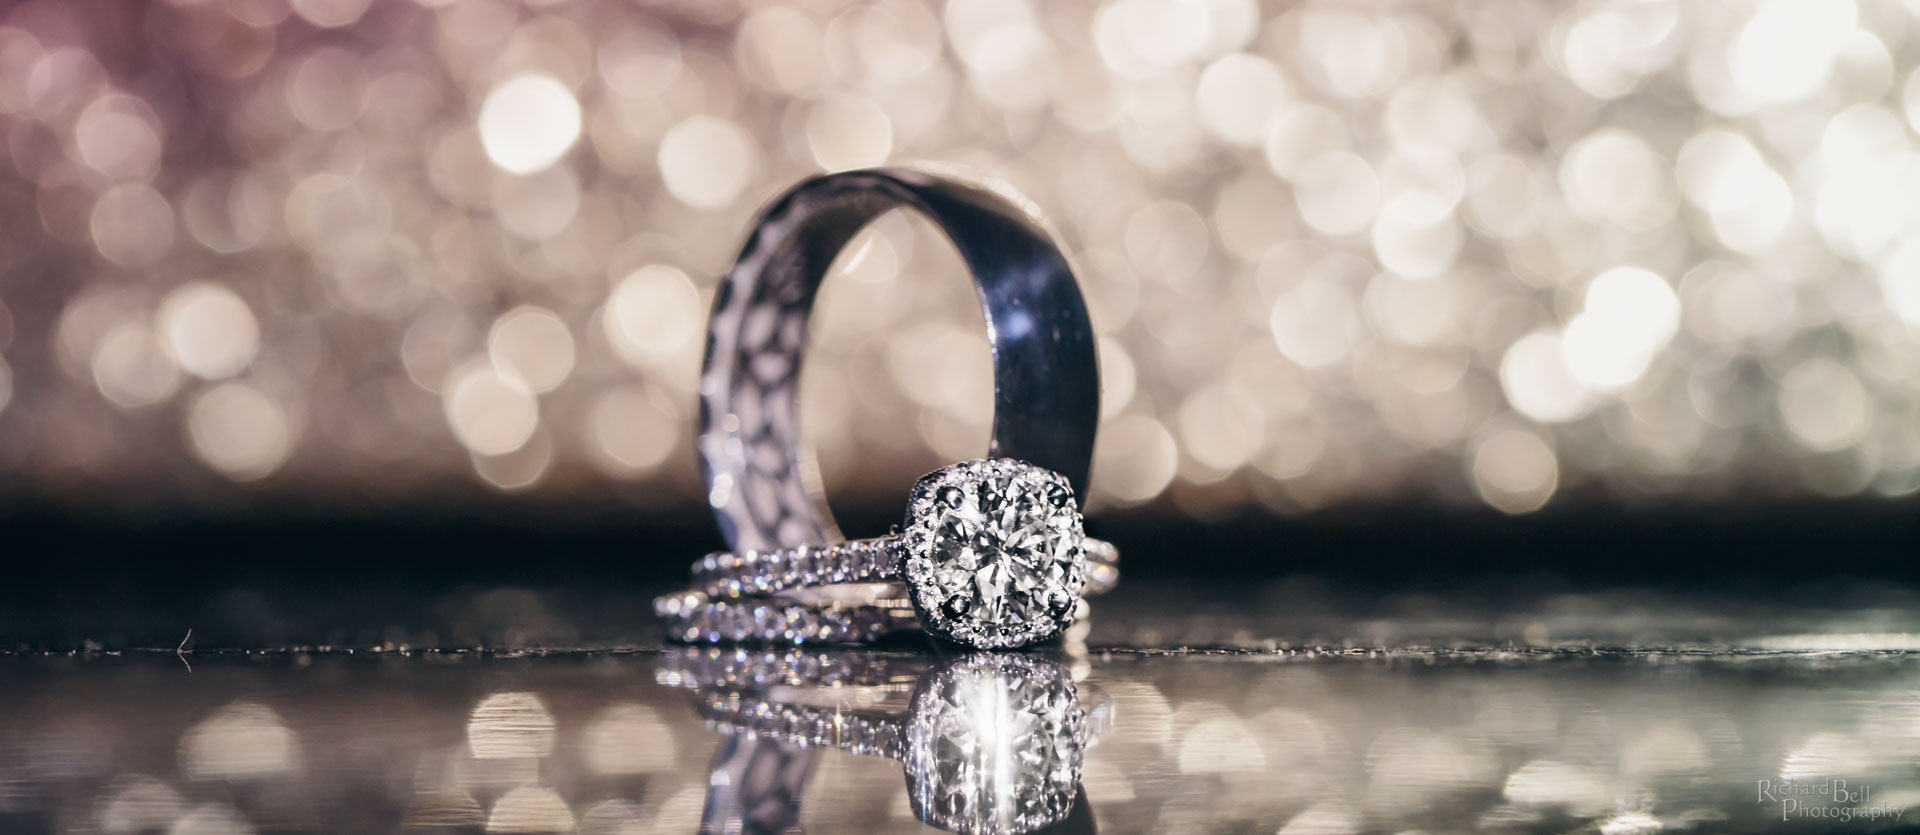 Glittery and rings